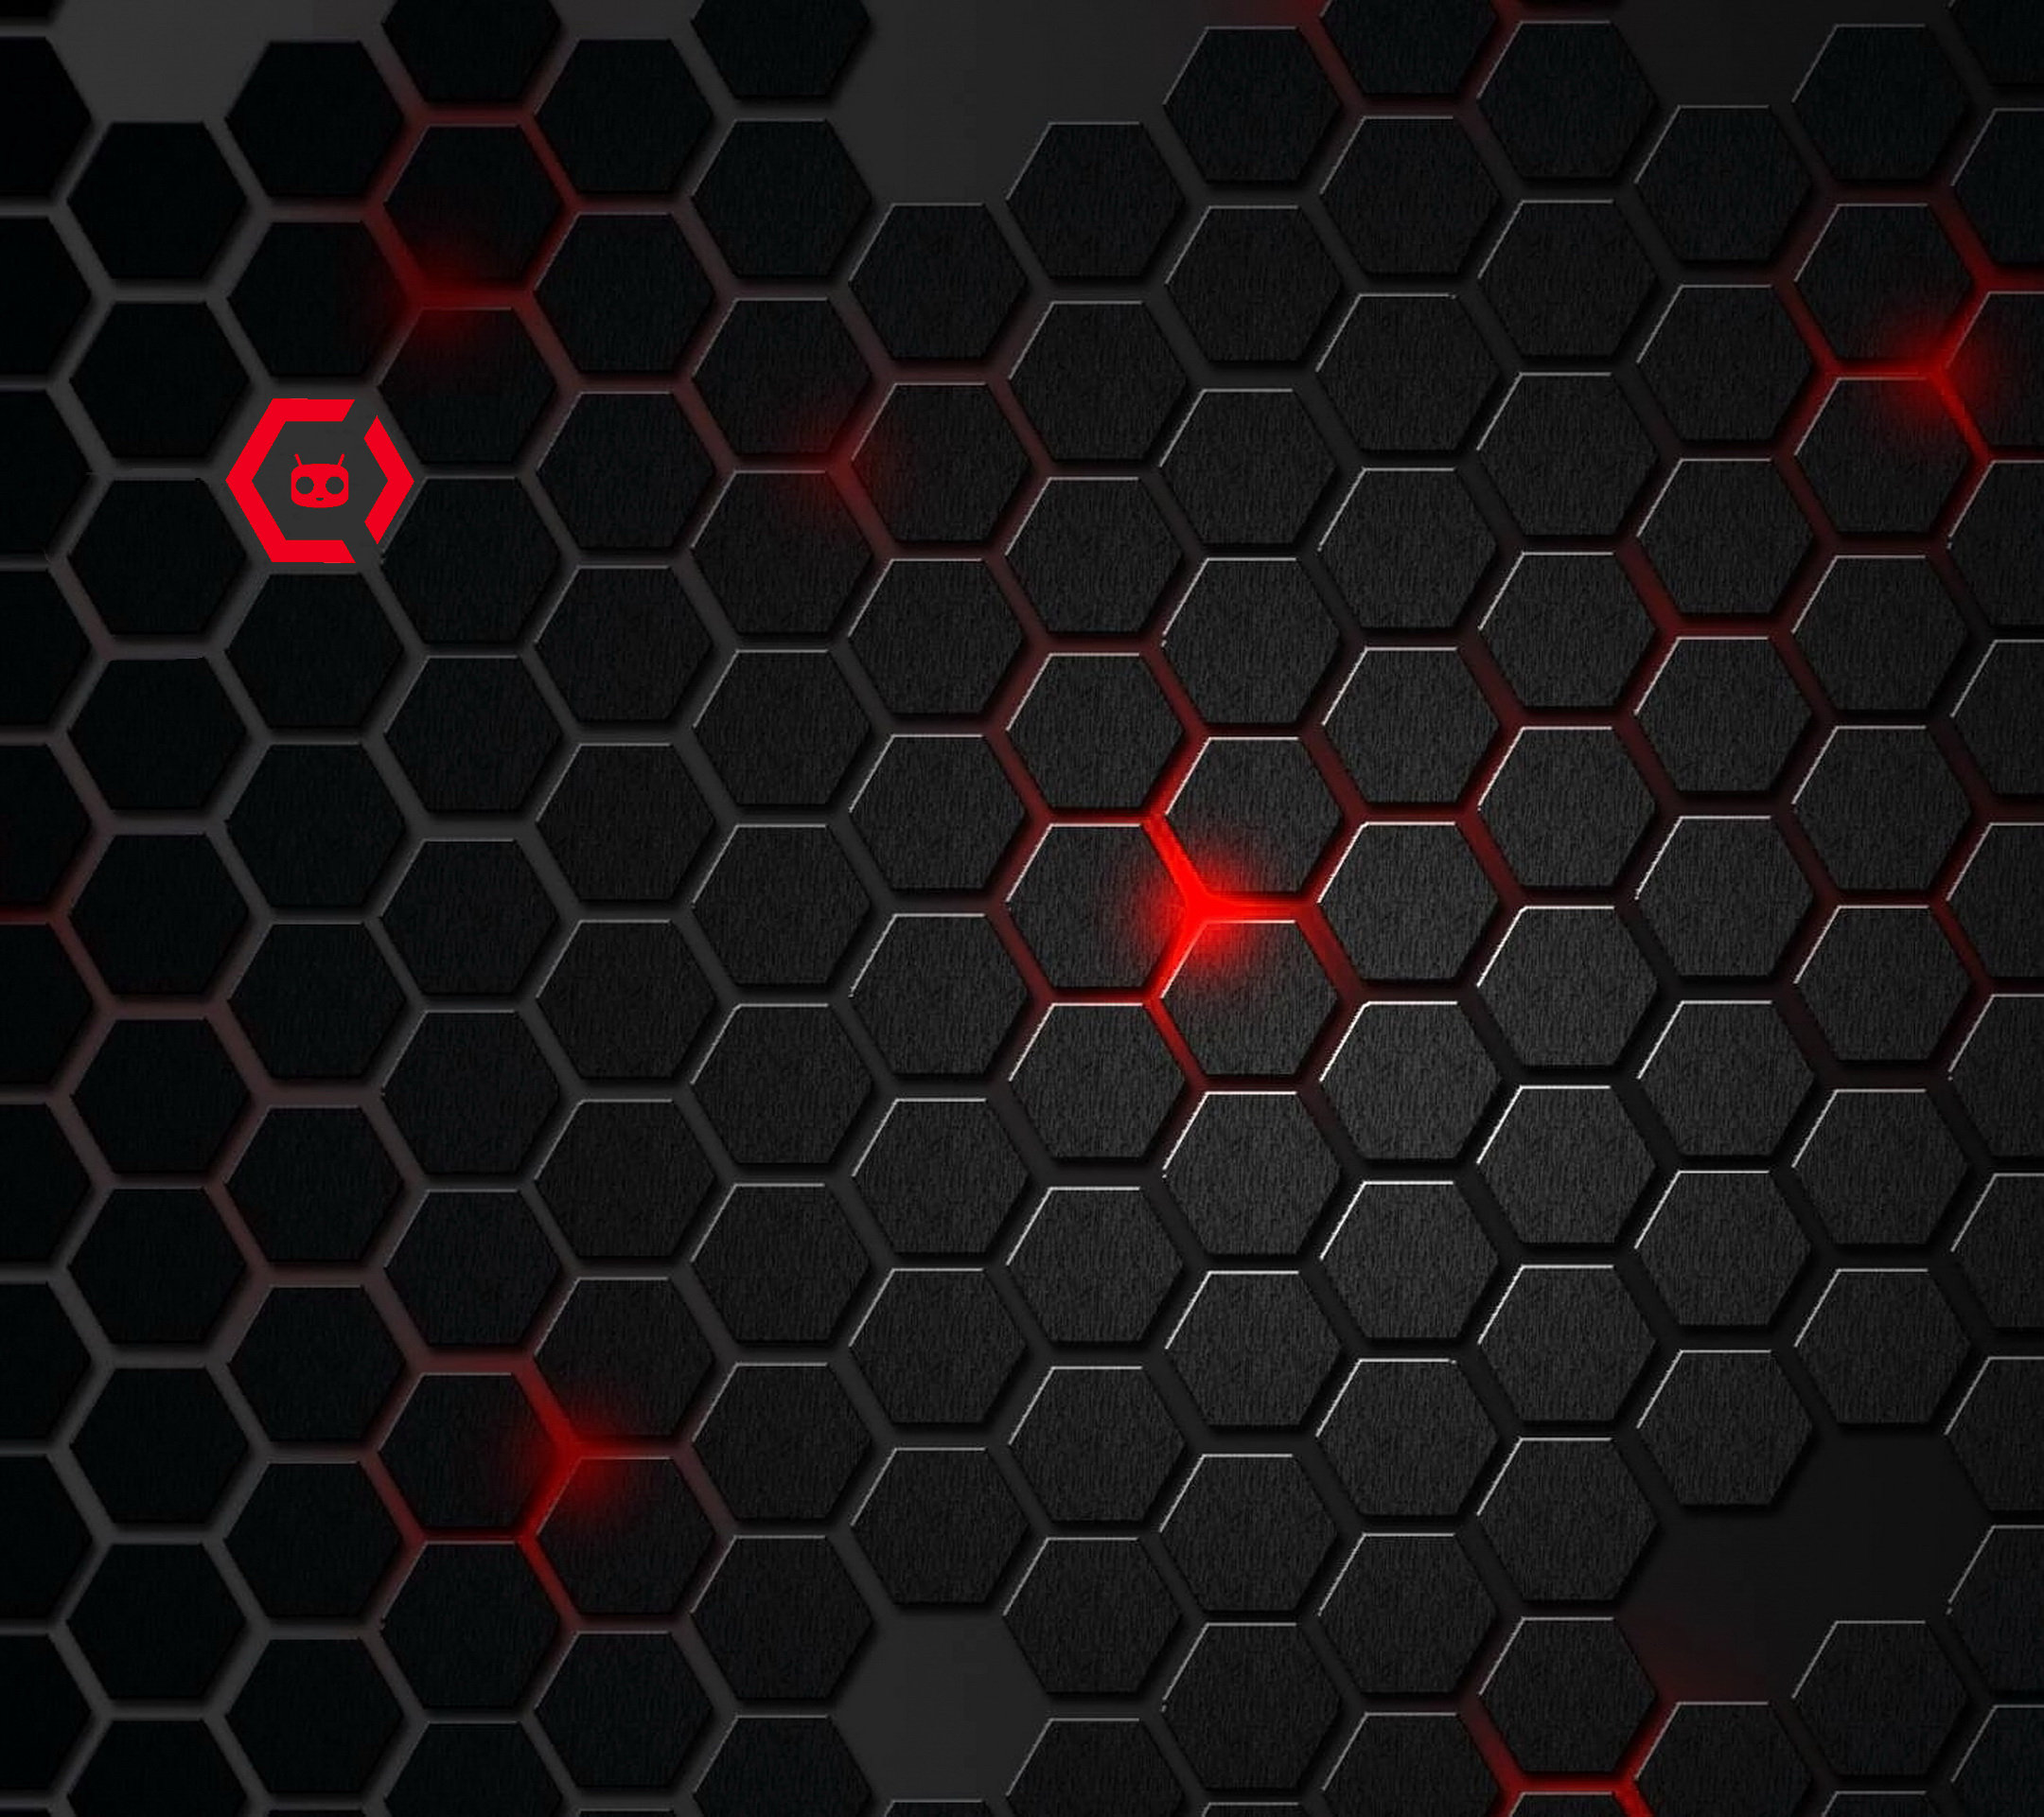 OnePlus Carbon Wallpaper   OnePlus Forums 2160x1920